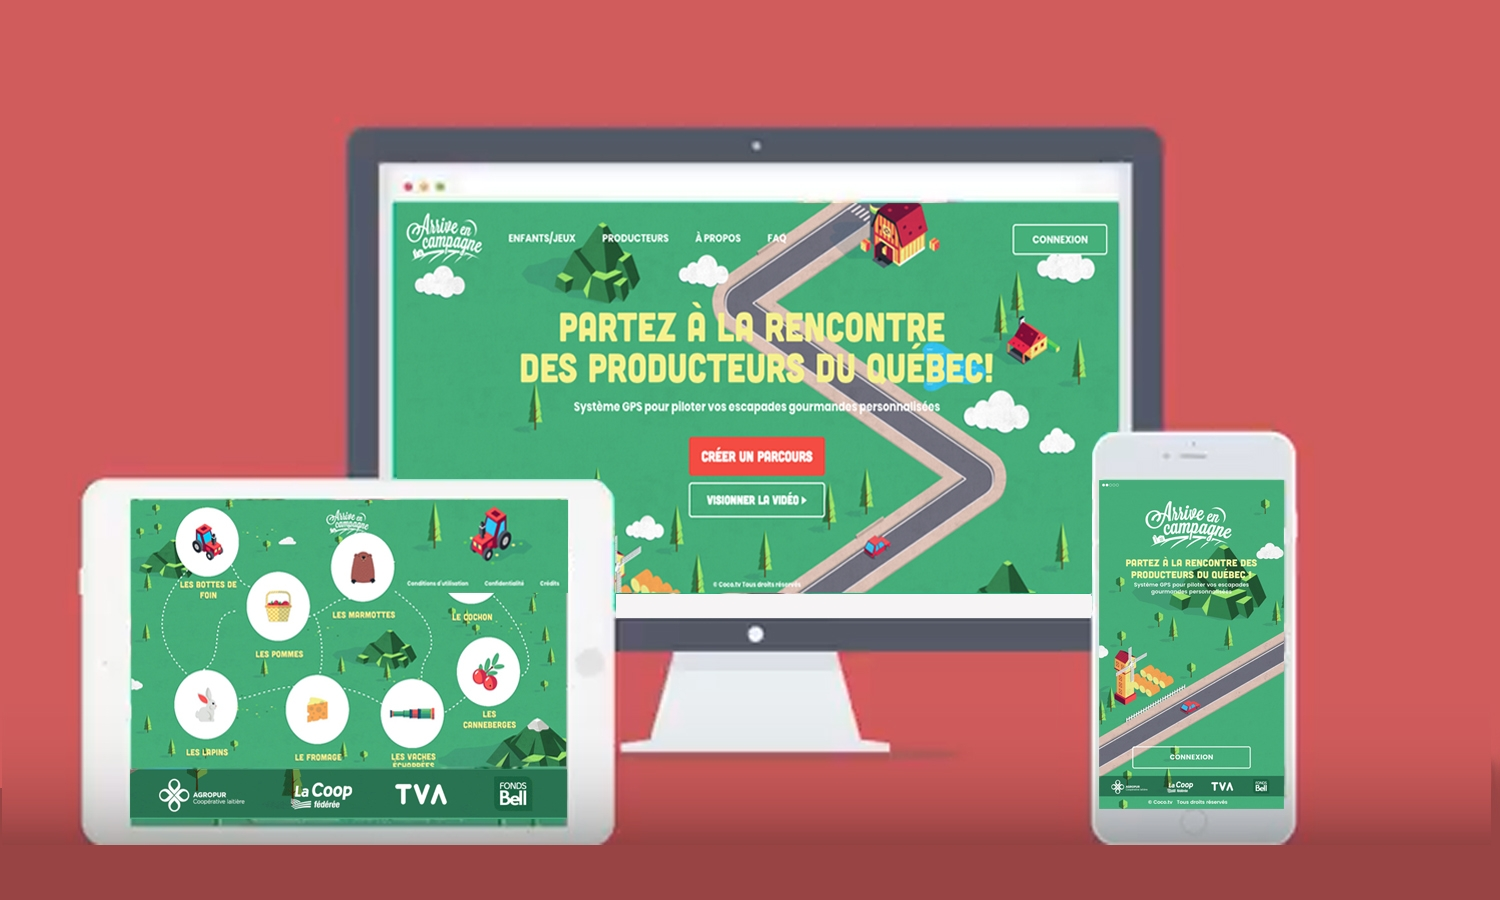 L'APPLICATION MOBILE ARRIVE EN CAMPAGNE FINALISTE AU PRIX NUMIX